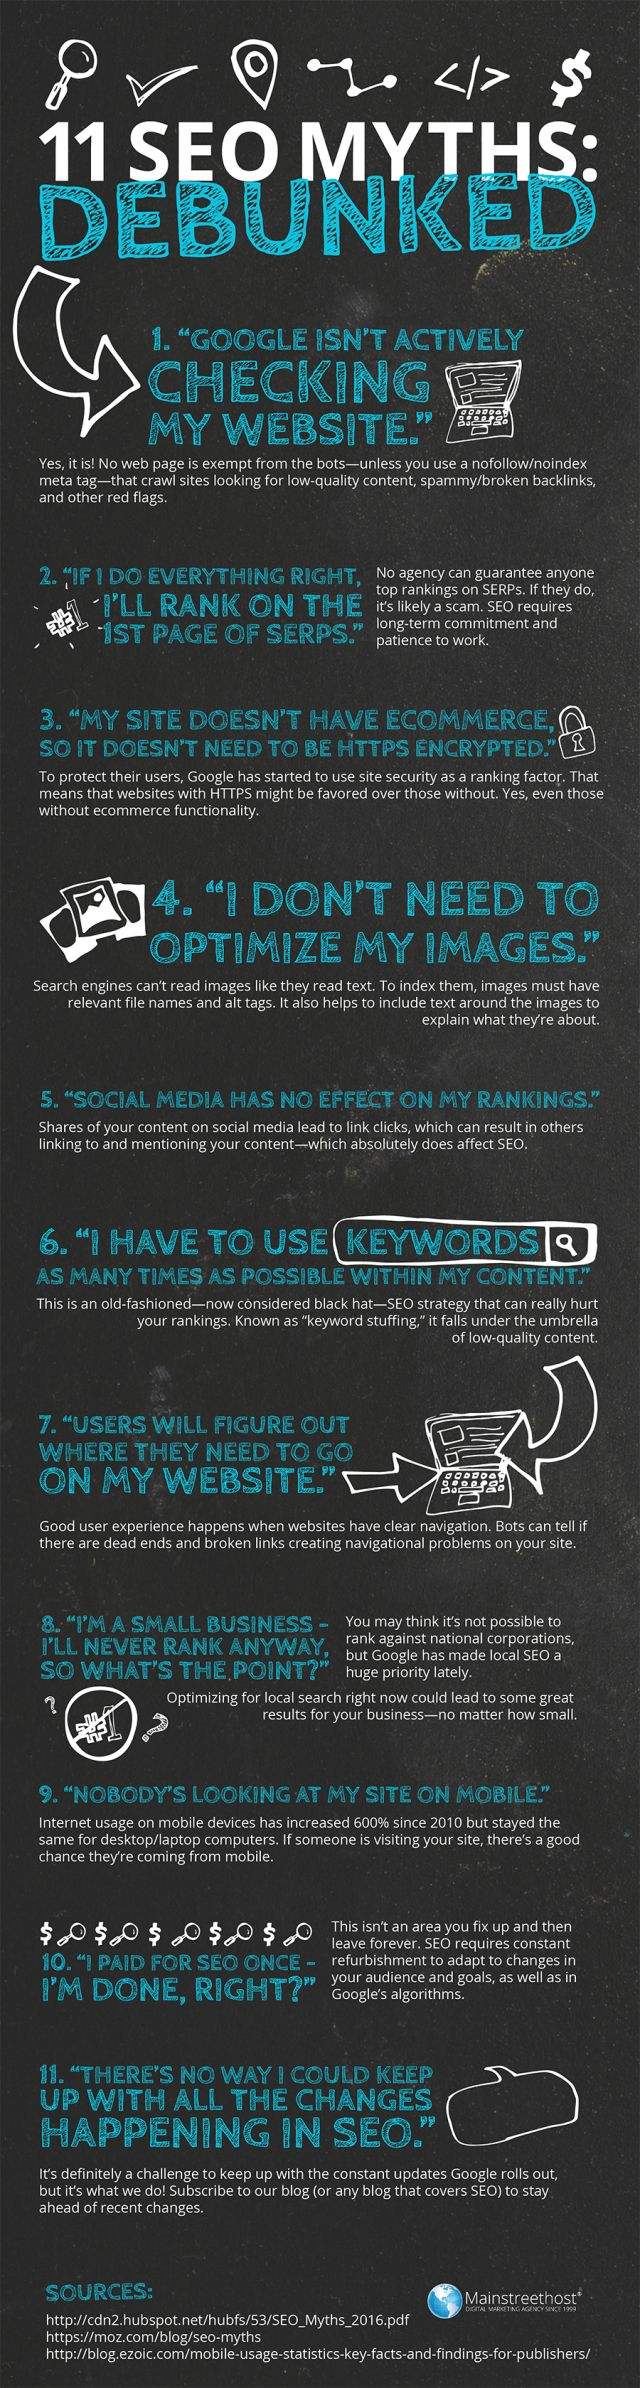 11 SEO Myths That Could Be Damaging Your Business #Infographic https://www.amazon.com/gp/goldbox?&tag=endzoneblog-20&camp=217705&creative=406577&linkCode=ur1&adid=02CJYRSTETDEKS23CWX2&